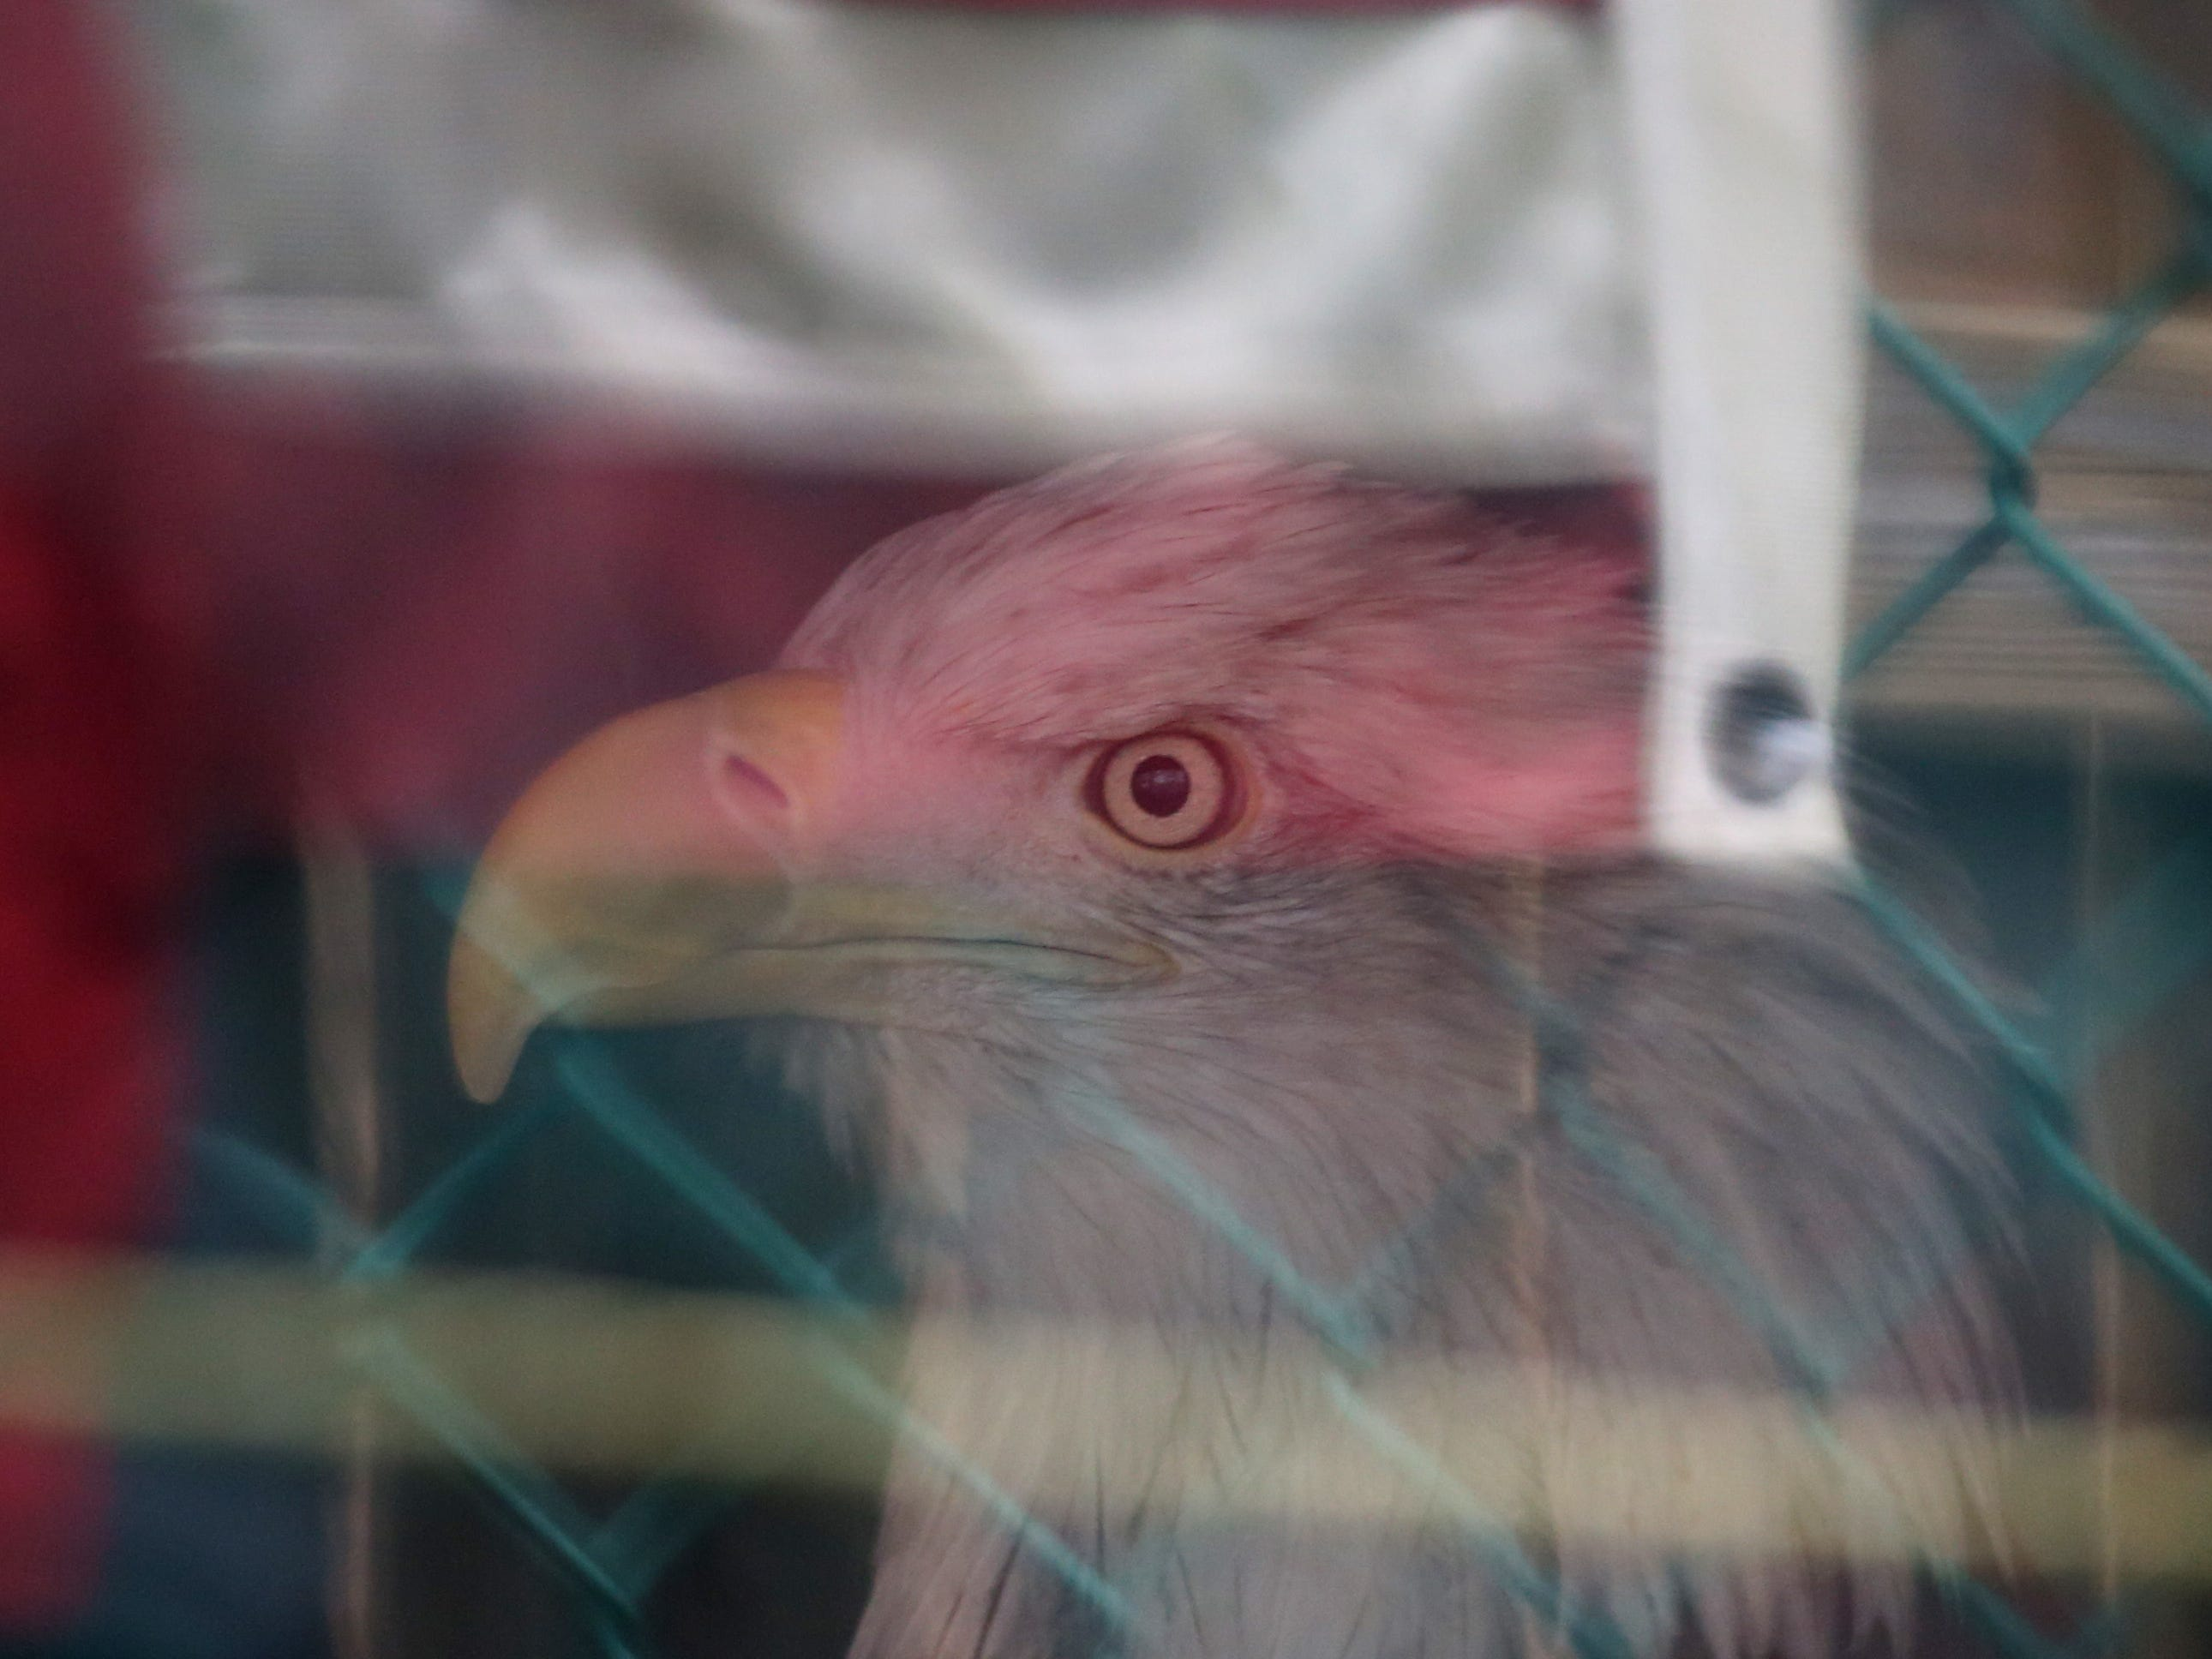 Athena, a bald eagle, looks out from her enclosure as visitors, and a American flag are reflected in the glass front.